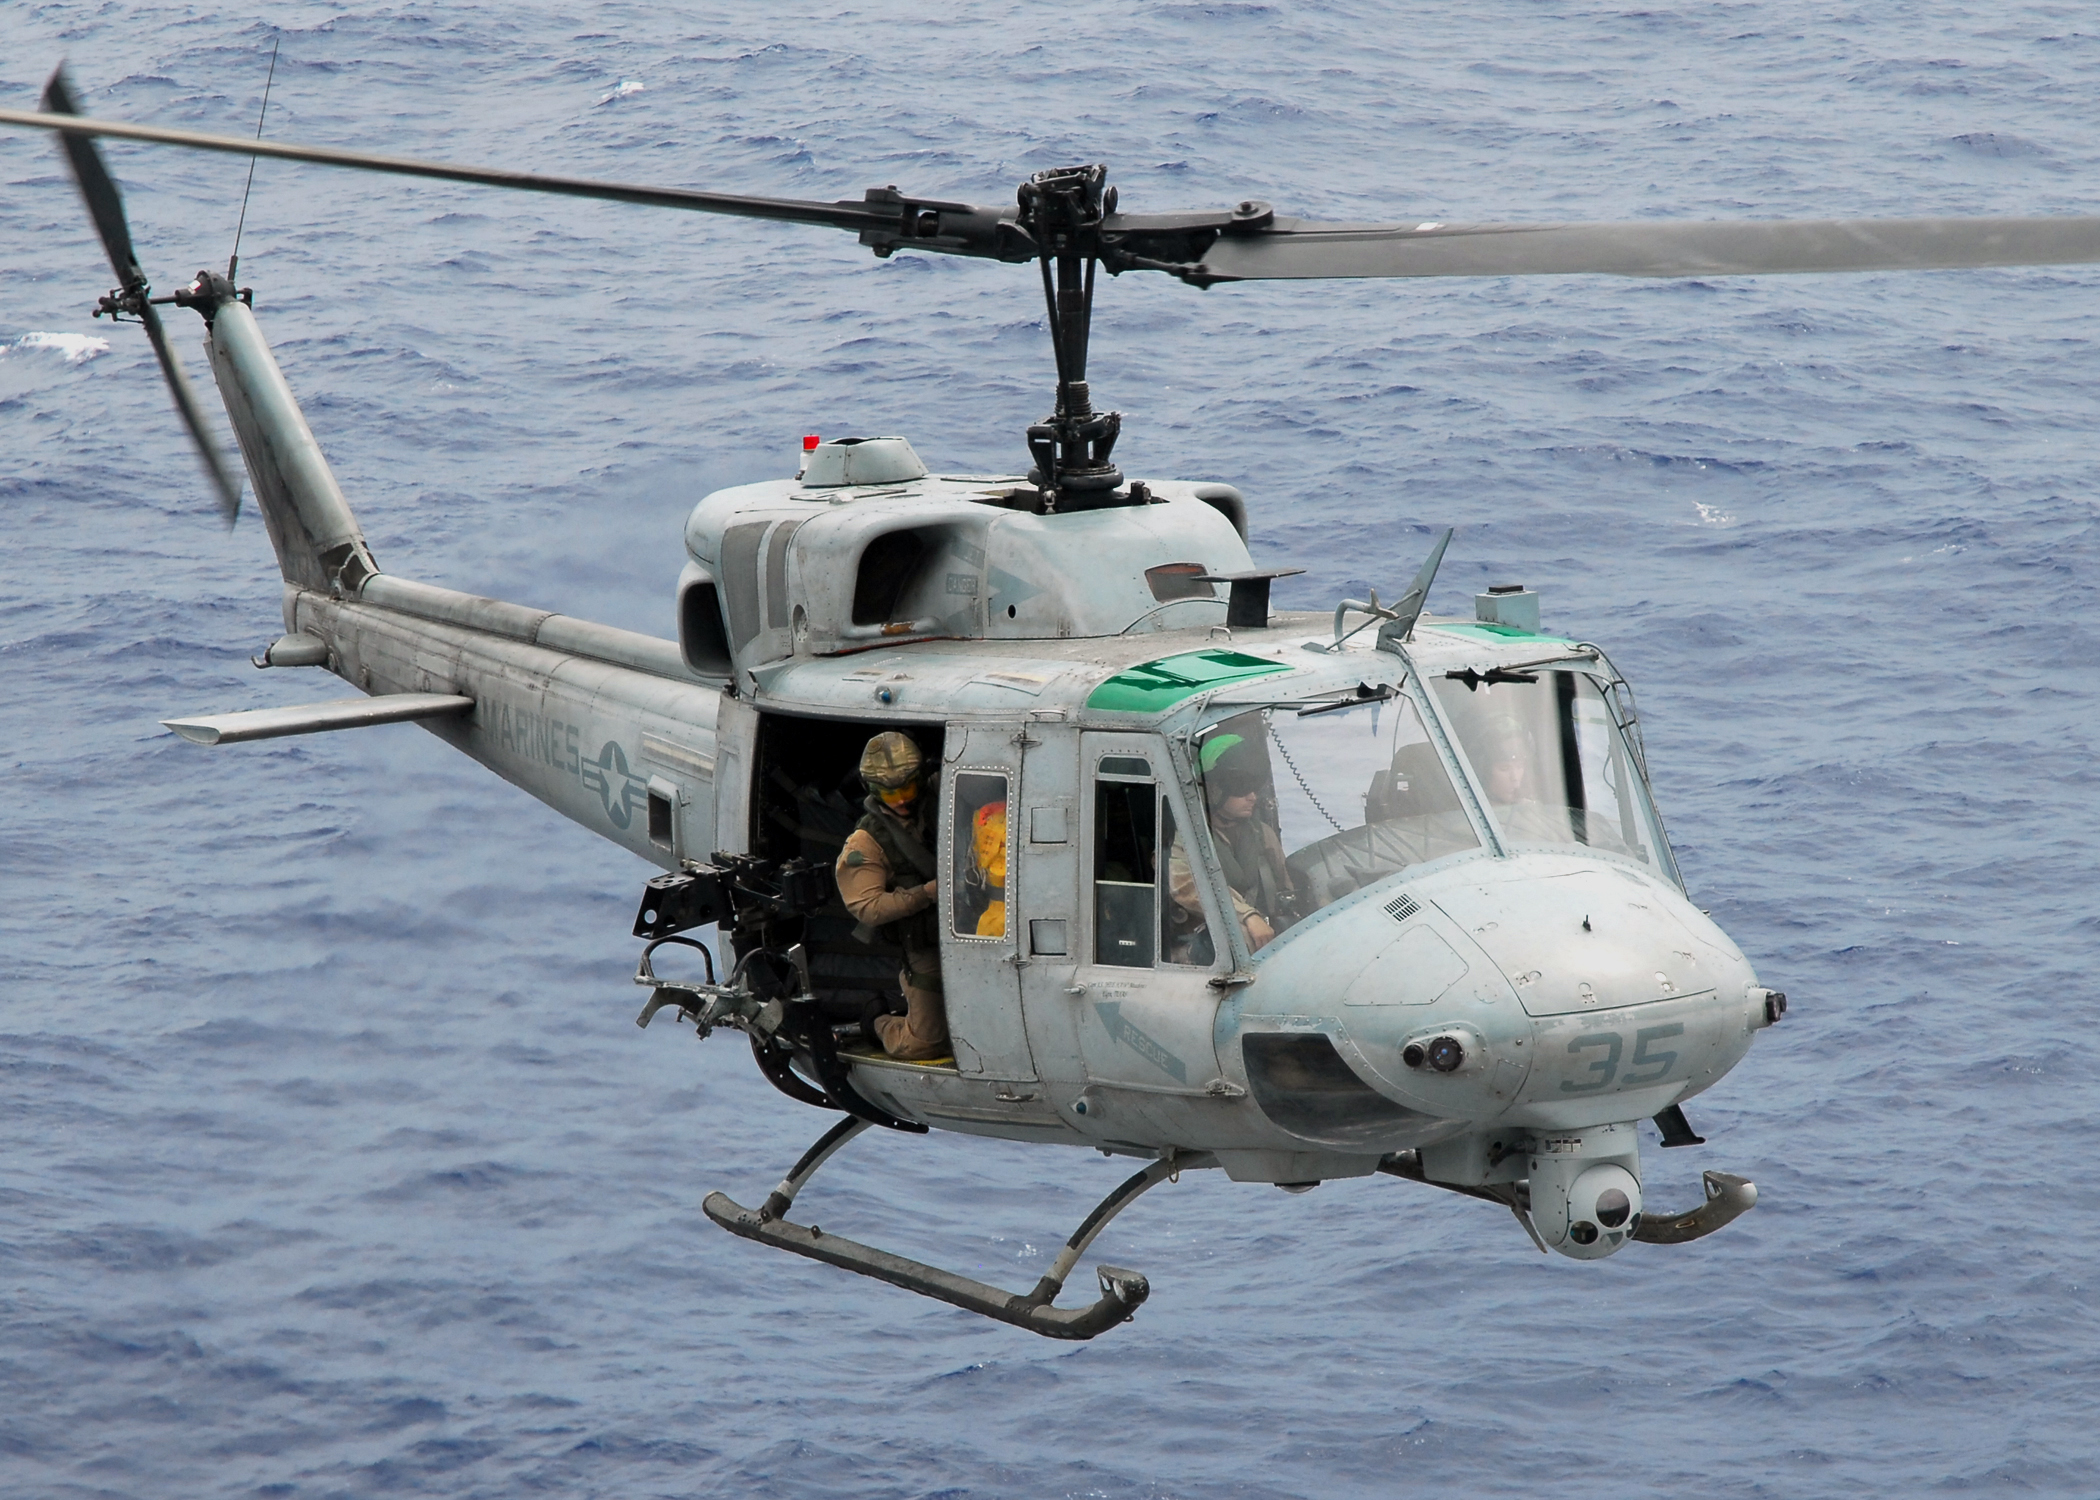 File:US Navy 081017-N-2183K-014 A UH-1N Twin Huey ...